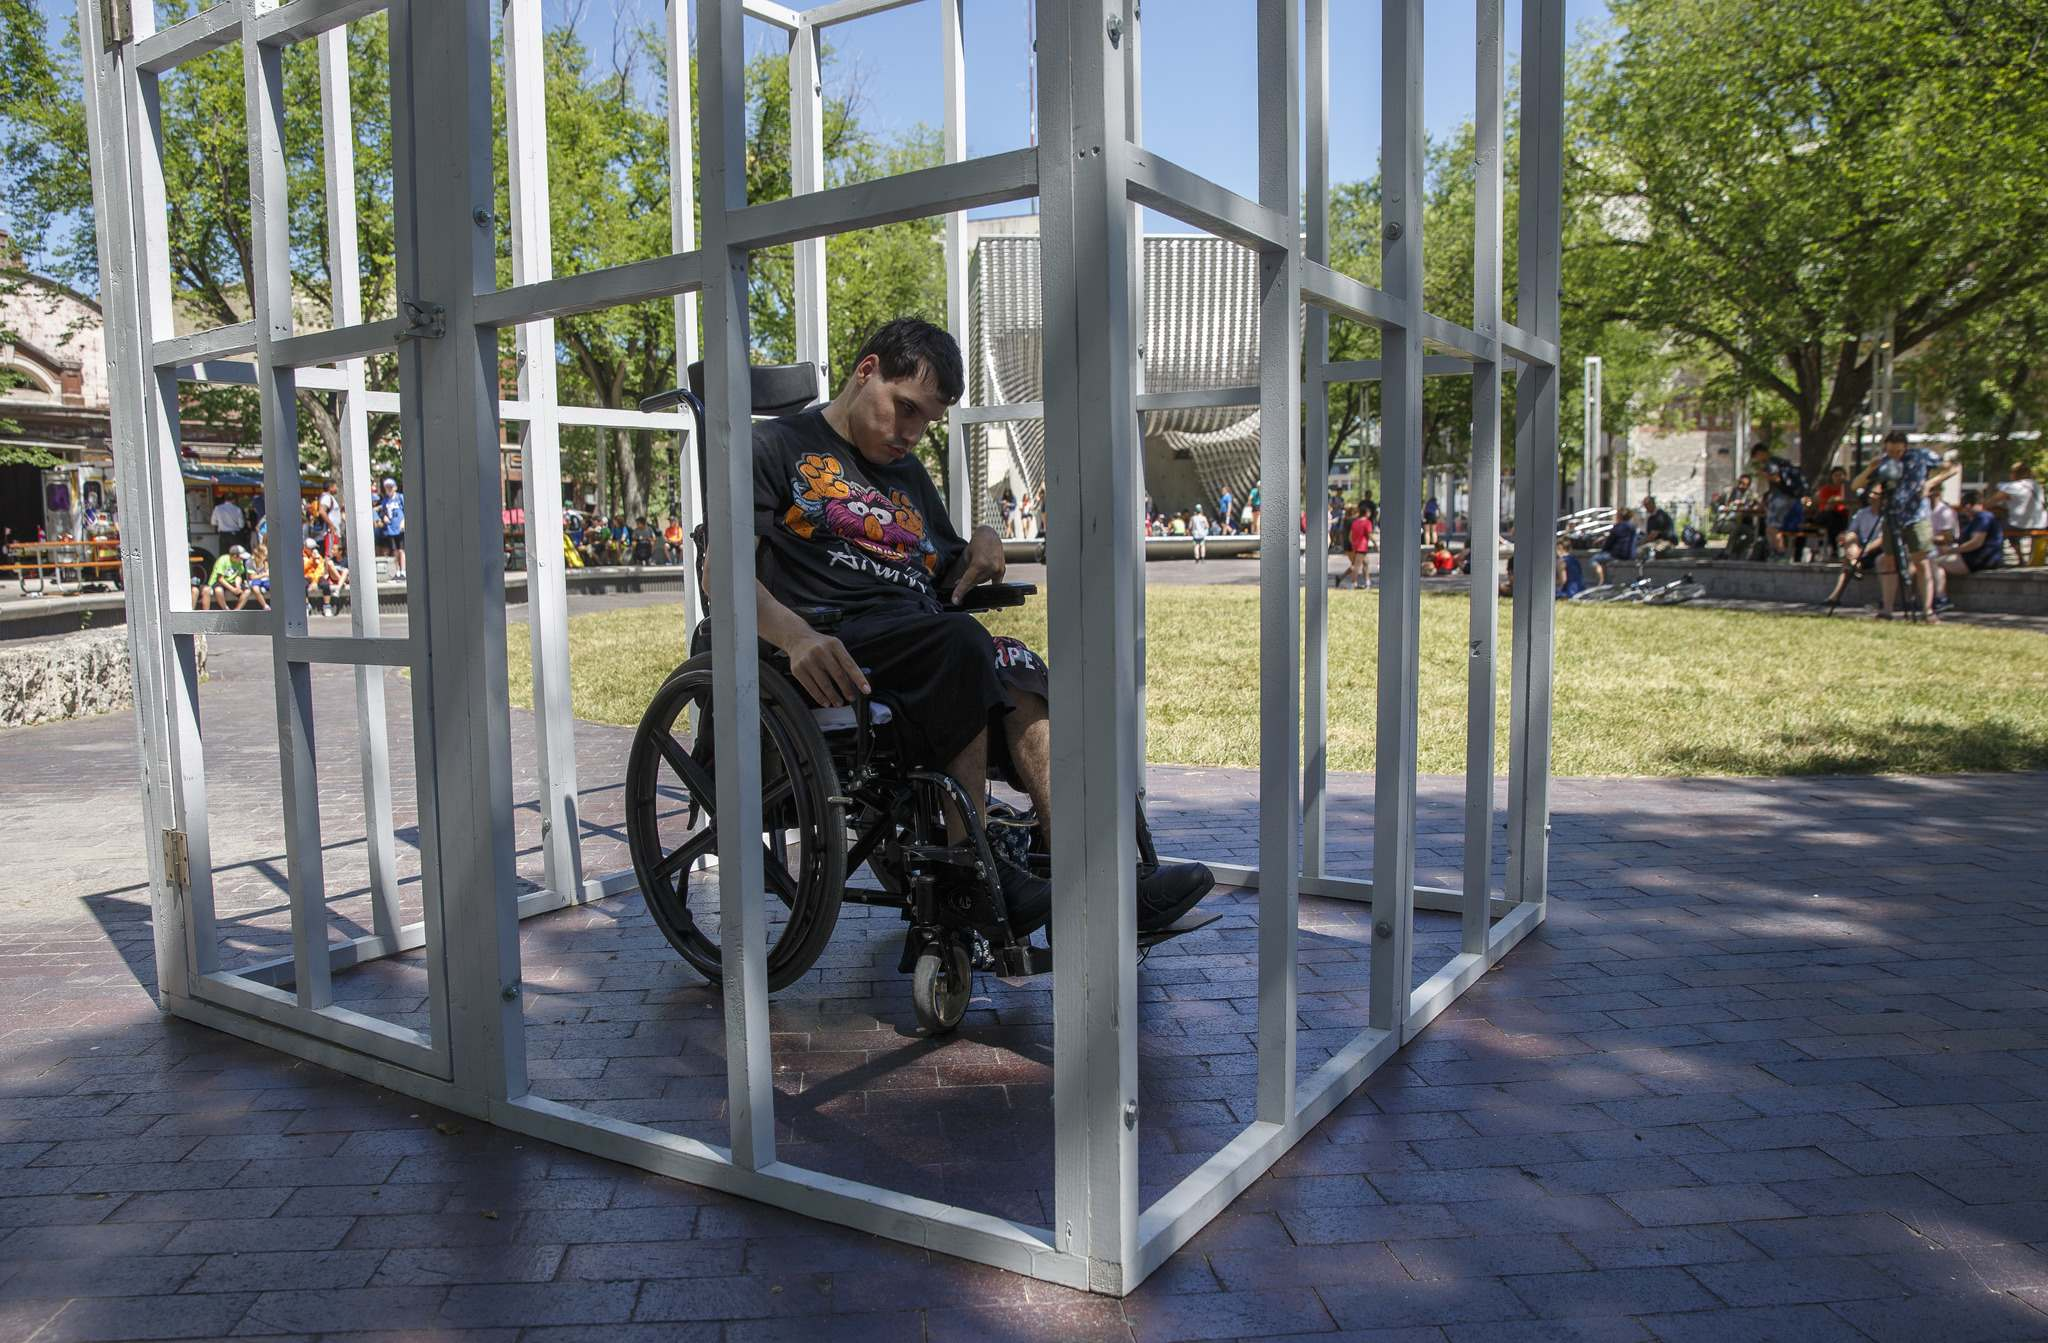 Tyson Sylvester, 22, put himself in a mock jail cell Thursday in Old Market Square to demonstrate what it&#39;s like to live in isolation as a person with a disability. (Mike Deal / Winnipeg Free Press)</p>